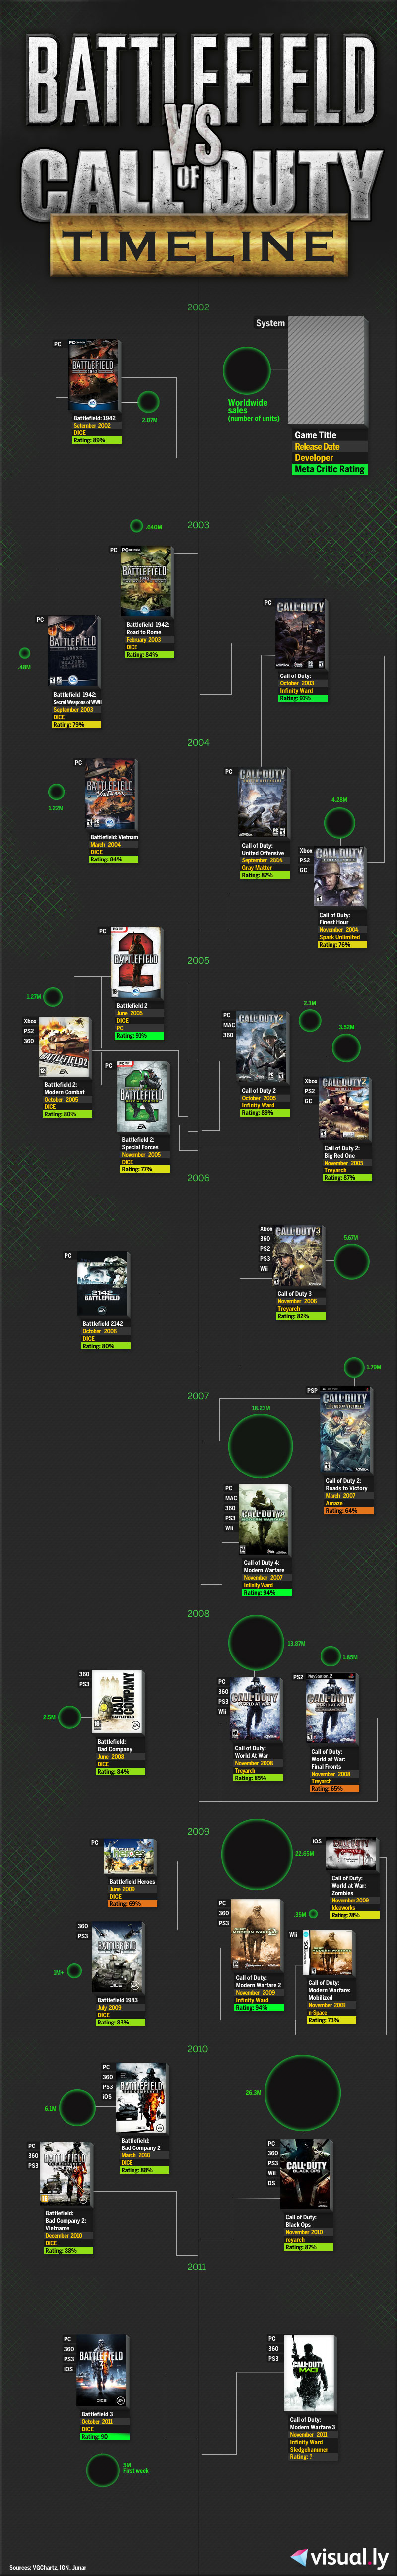 A History Of Battlefield Versus Call Of Duty Call Of Duty Battlefield Modern Warfare